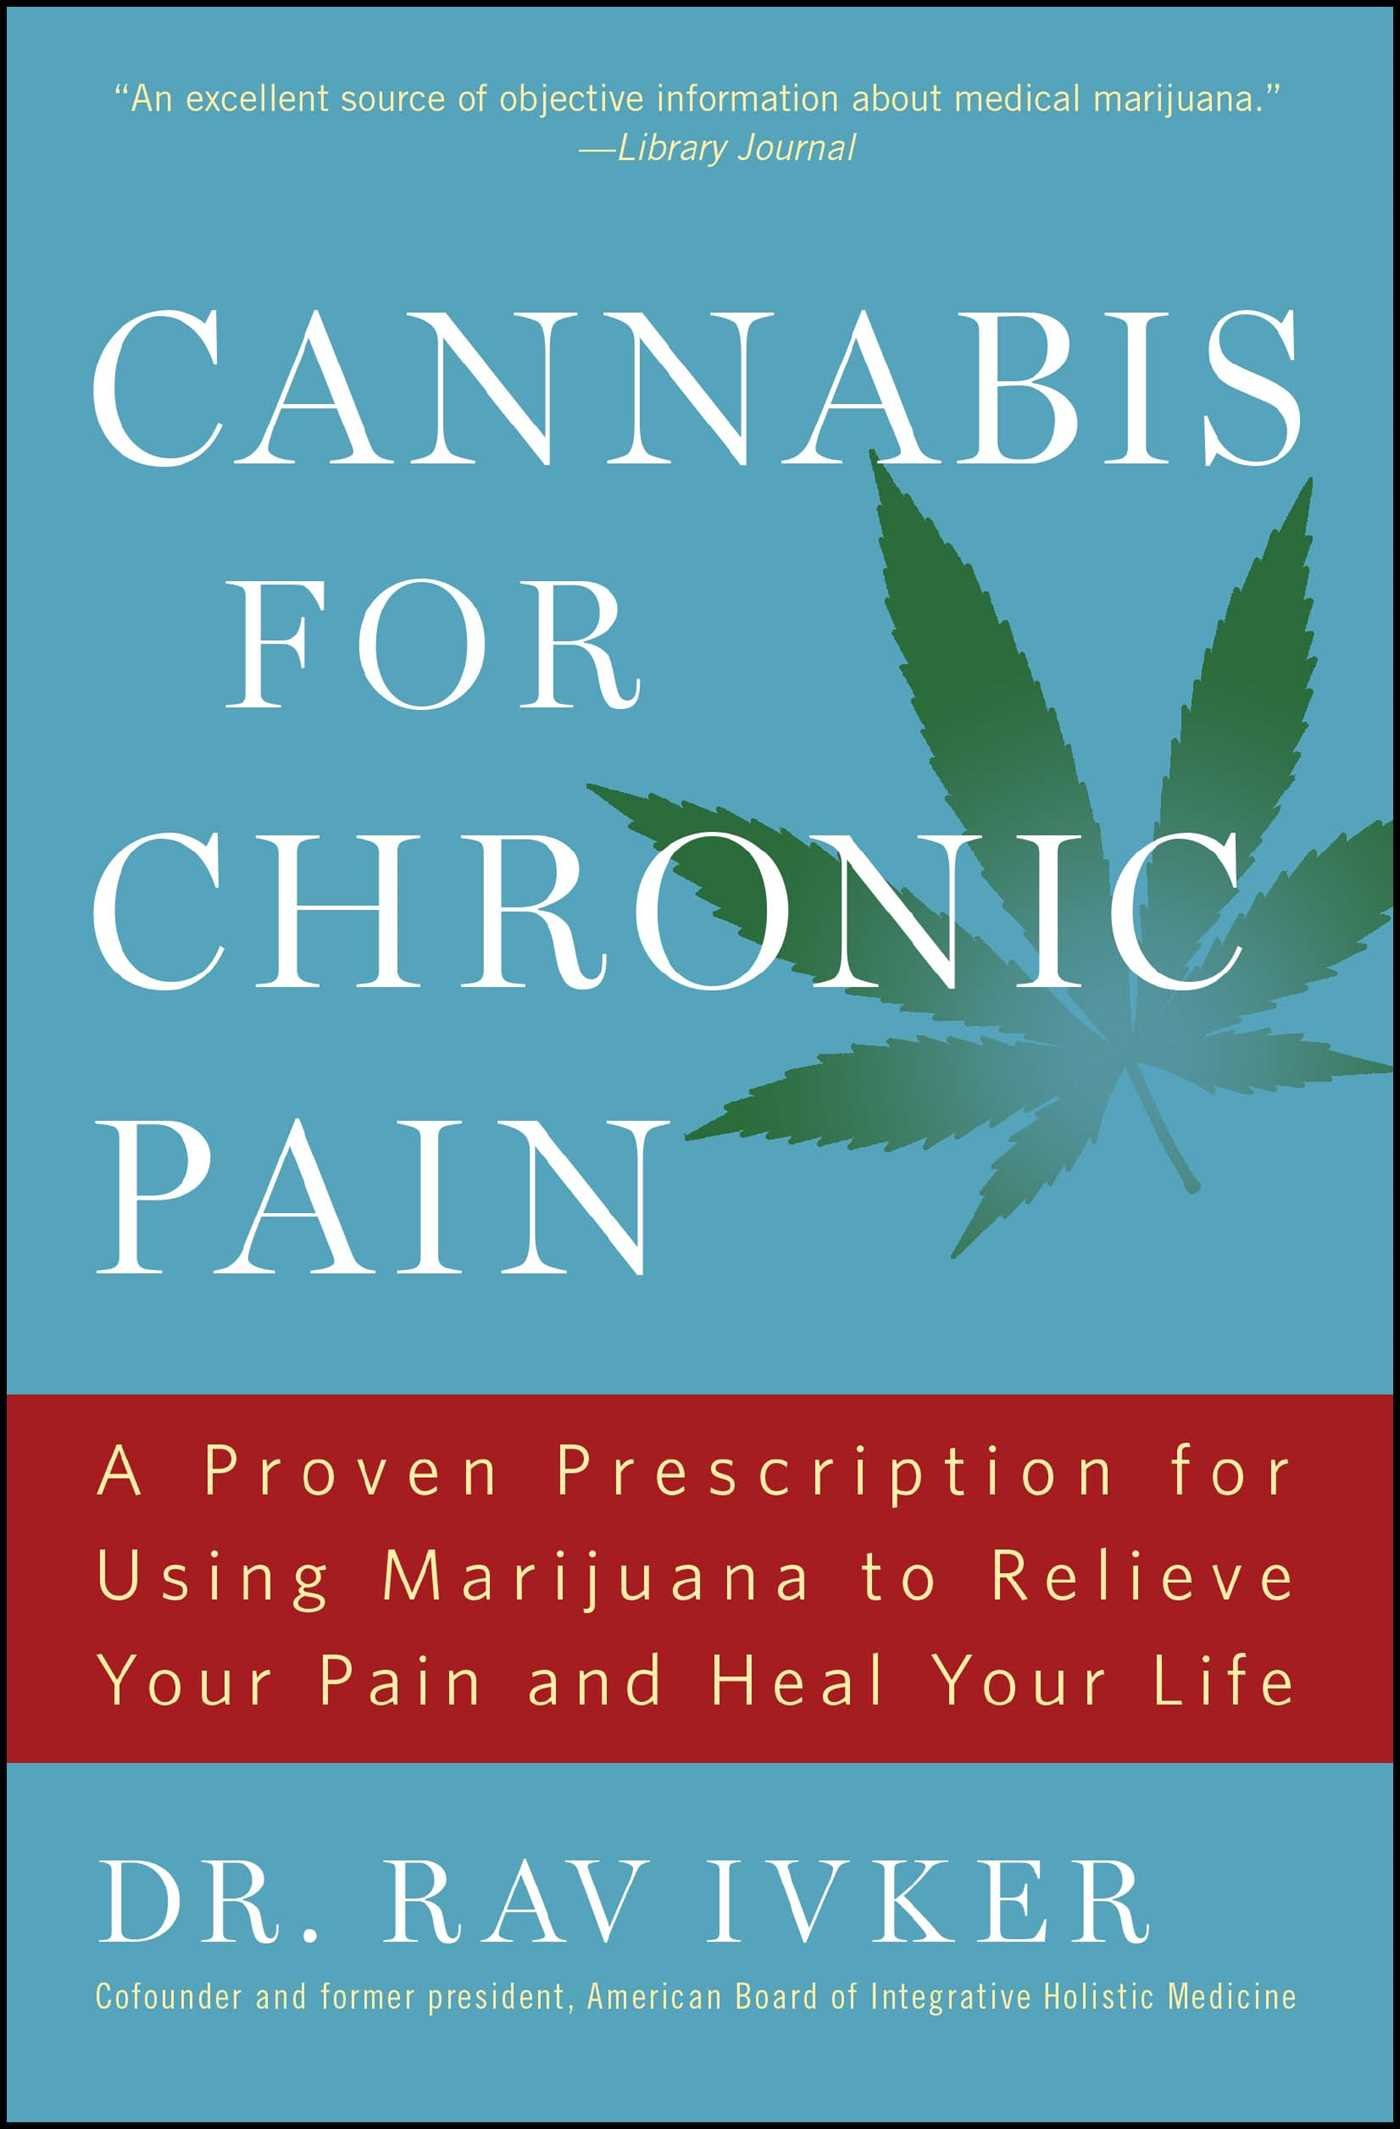 Cannabis for Chronic Pain: A Proven Prescription for Using Marijuana to Relieve Your Pain and Heal Your Life ebook